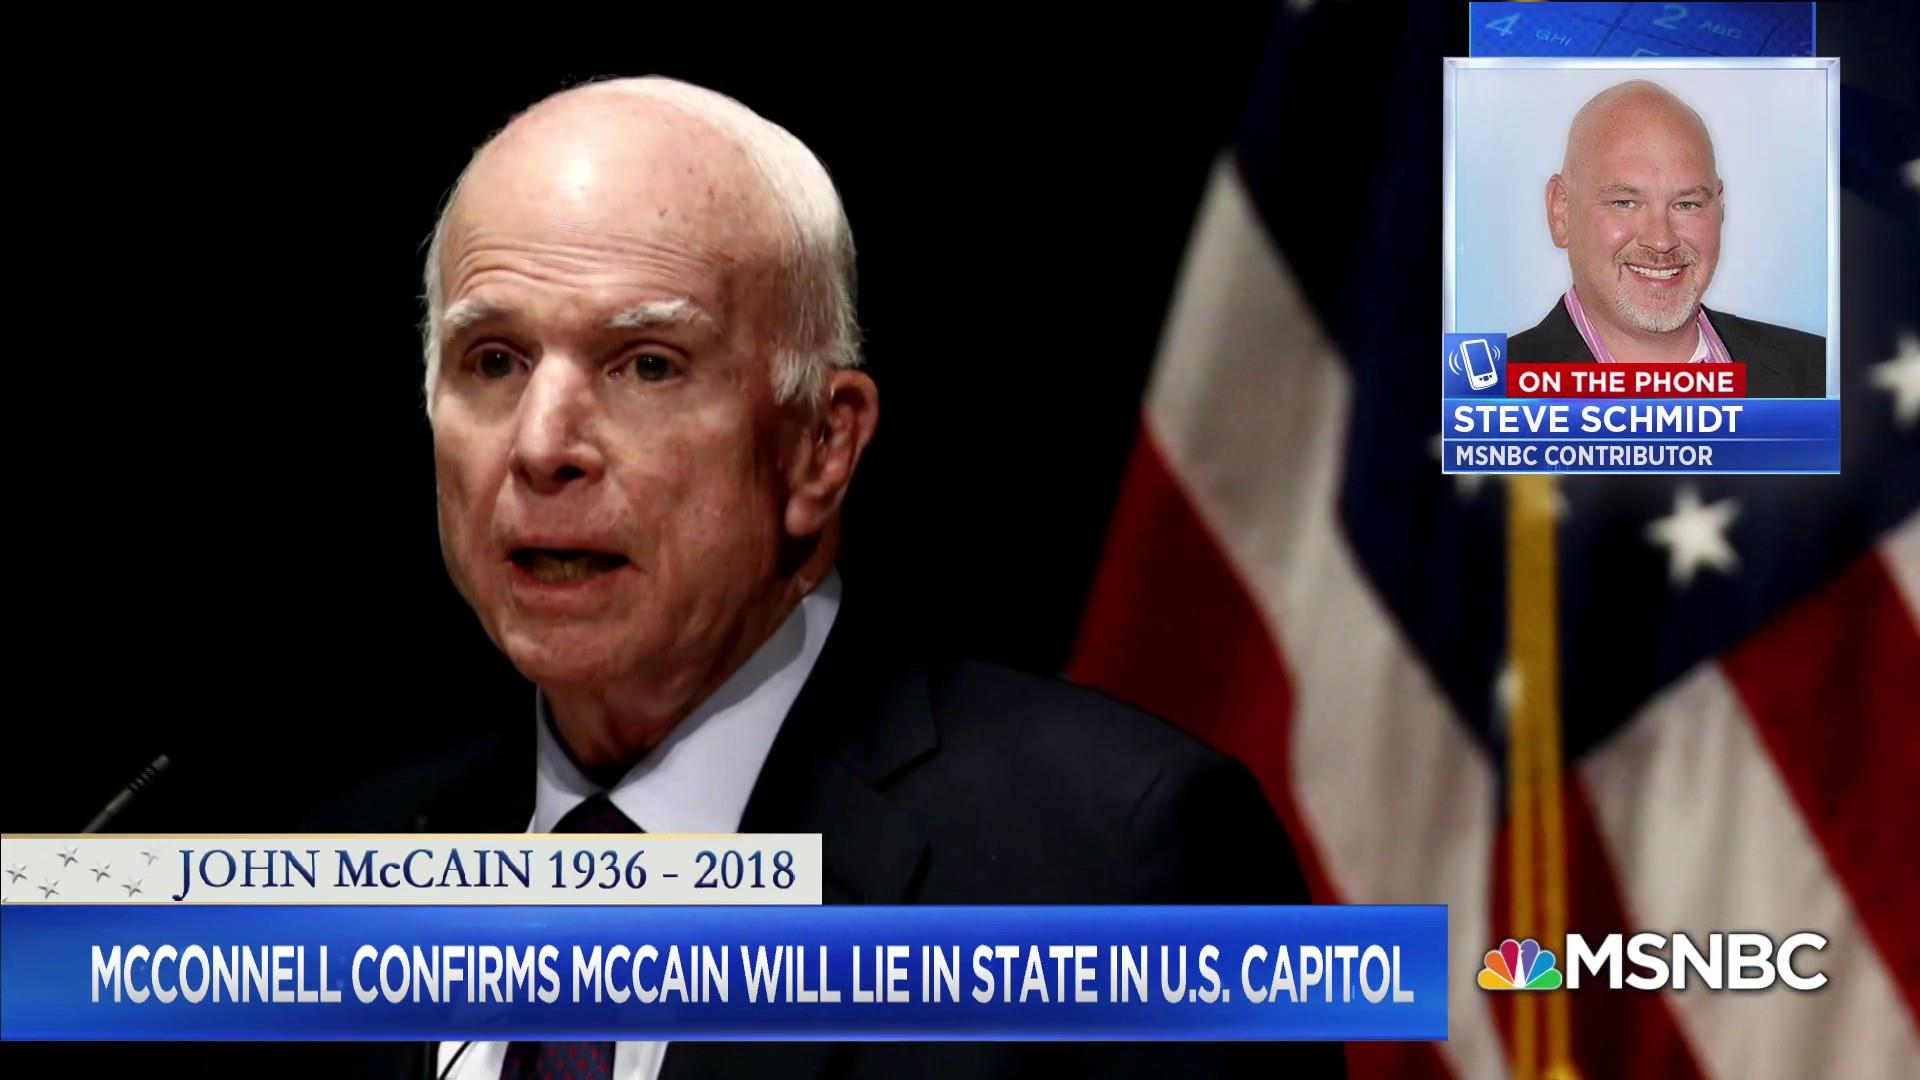 Schmidt on McCain: We lost someone profoundly special